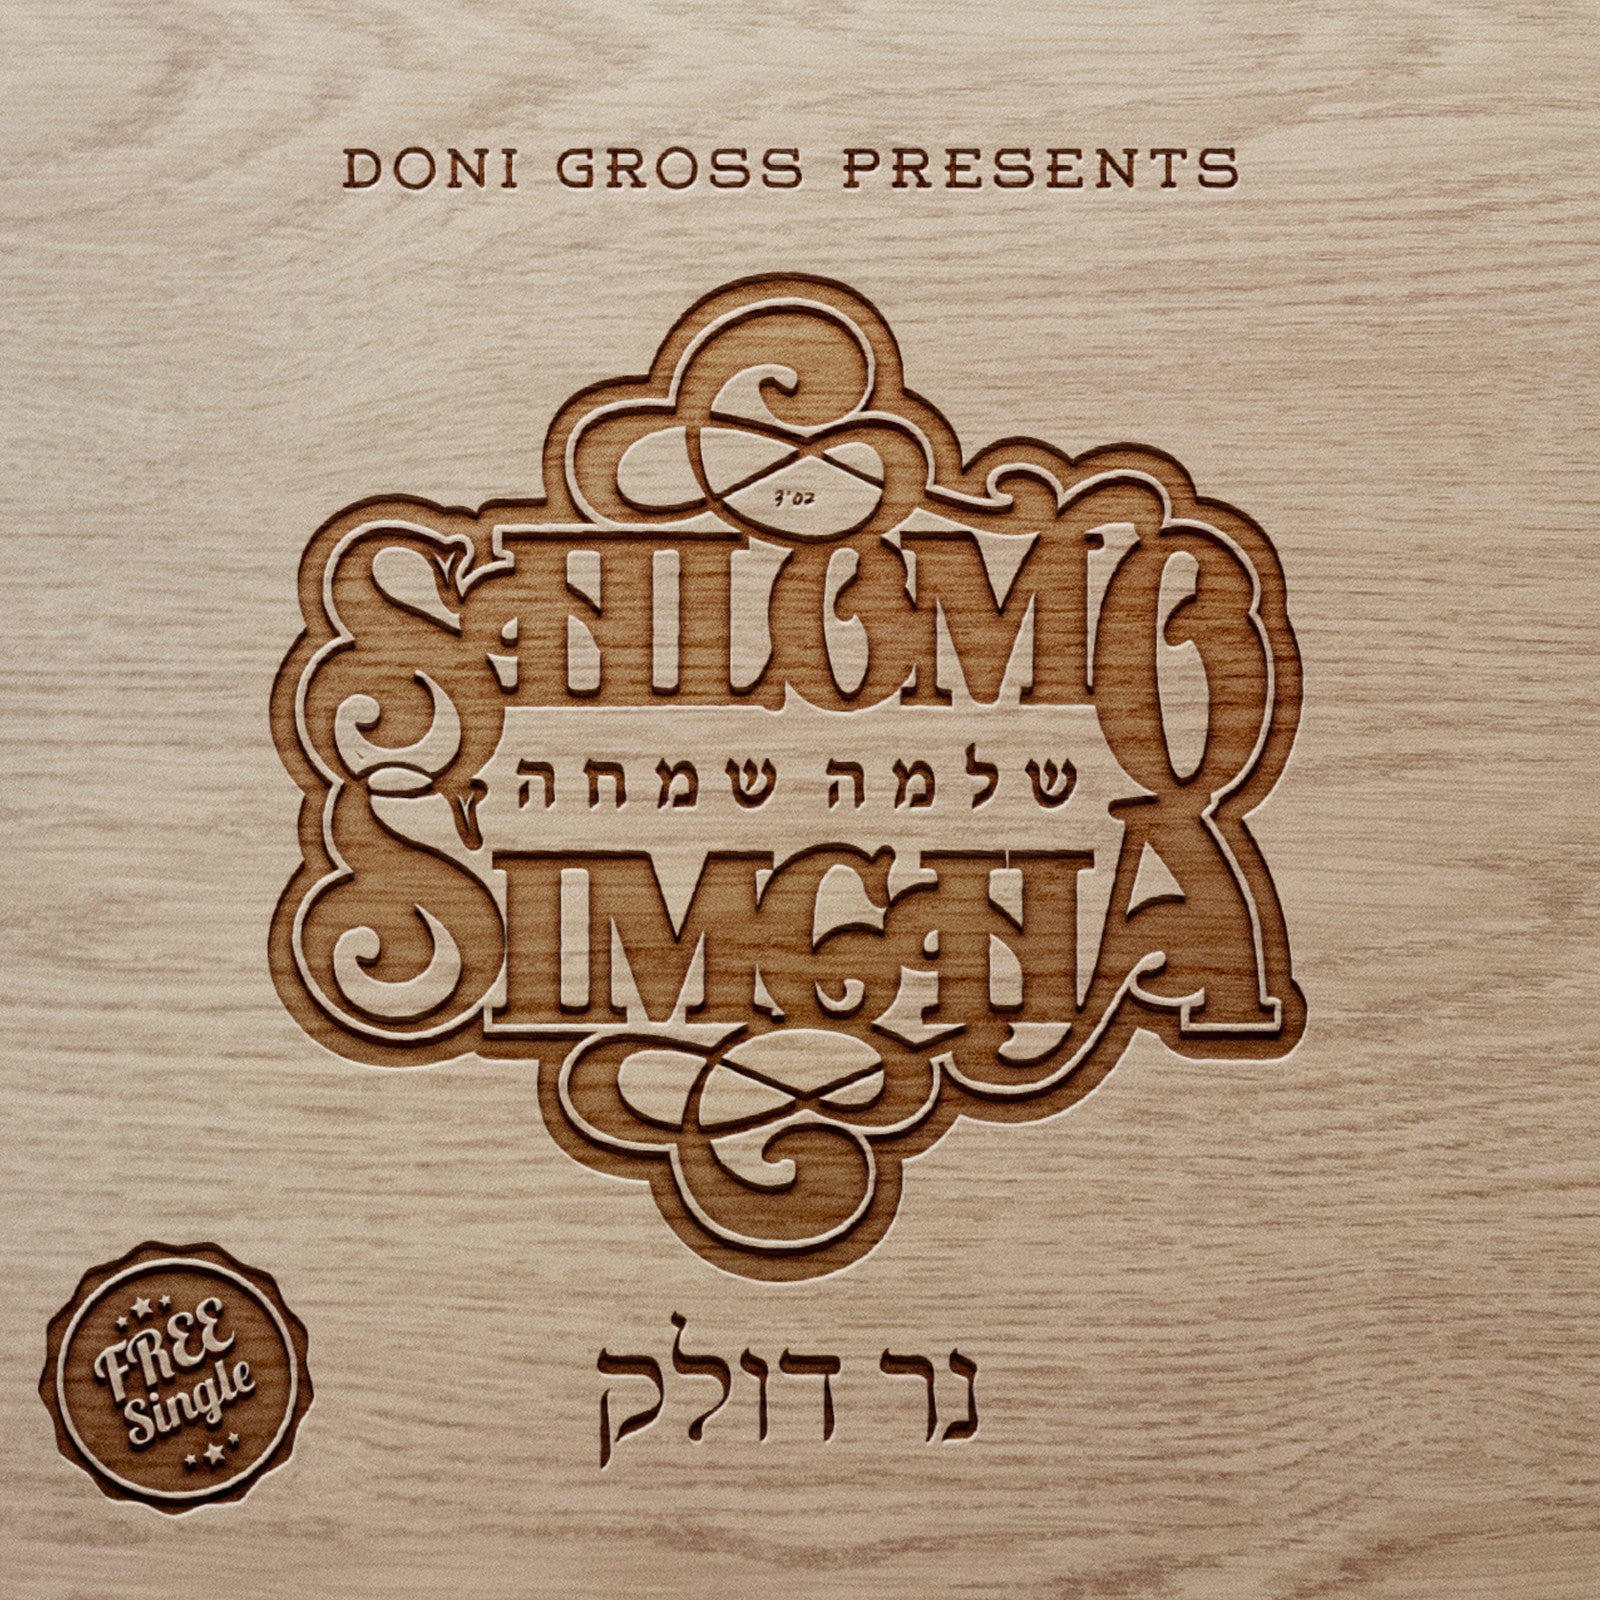 Shlomo Simcha - Ner Dolek (Single)